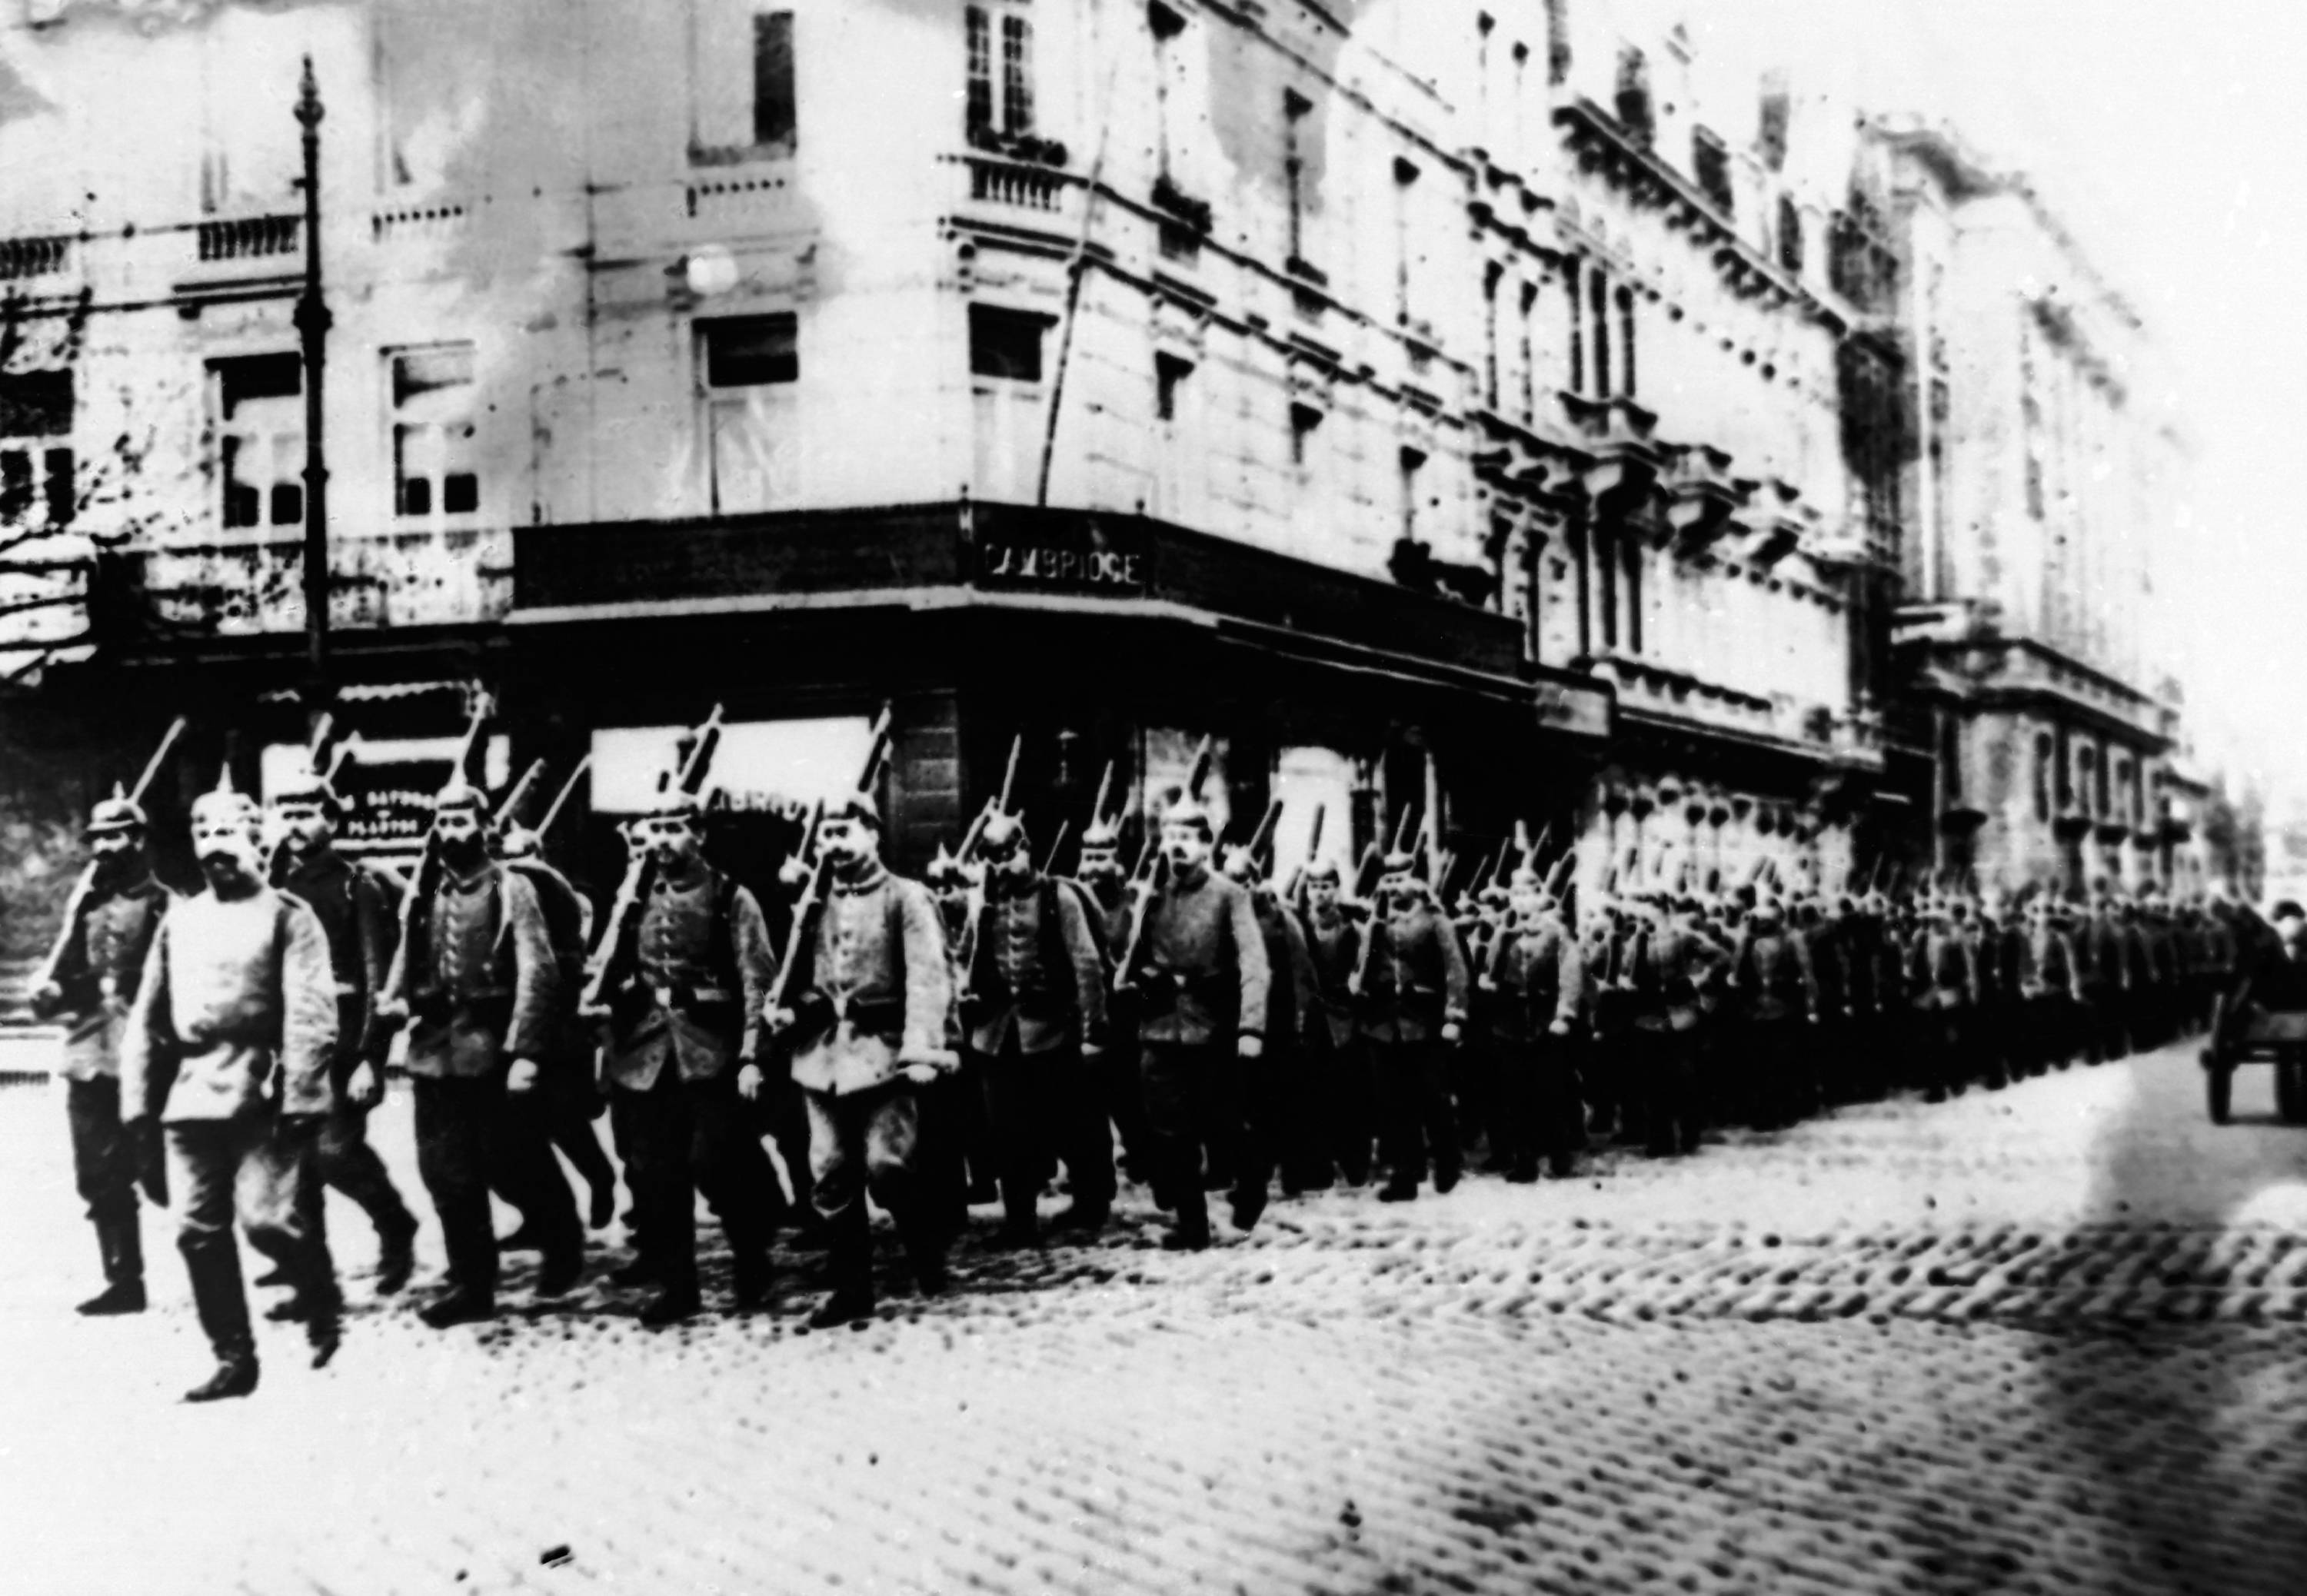 17 OF 100: In this 1914 file photo, German troops march through the streets of Antwerp, Belgium, during World War I.